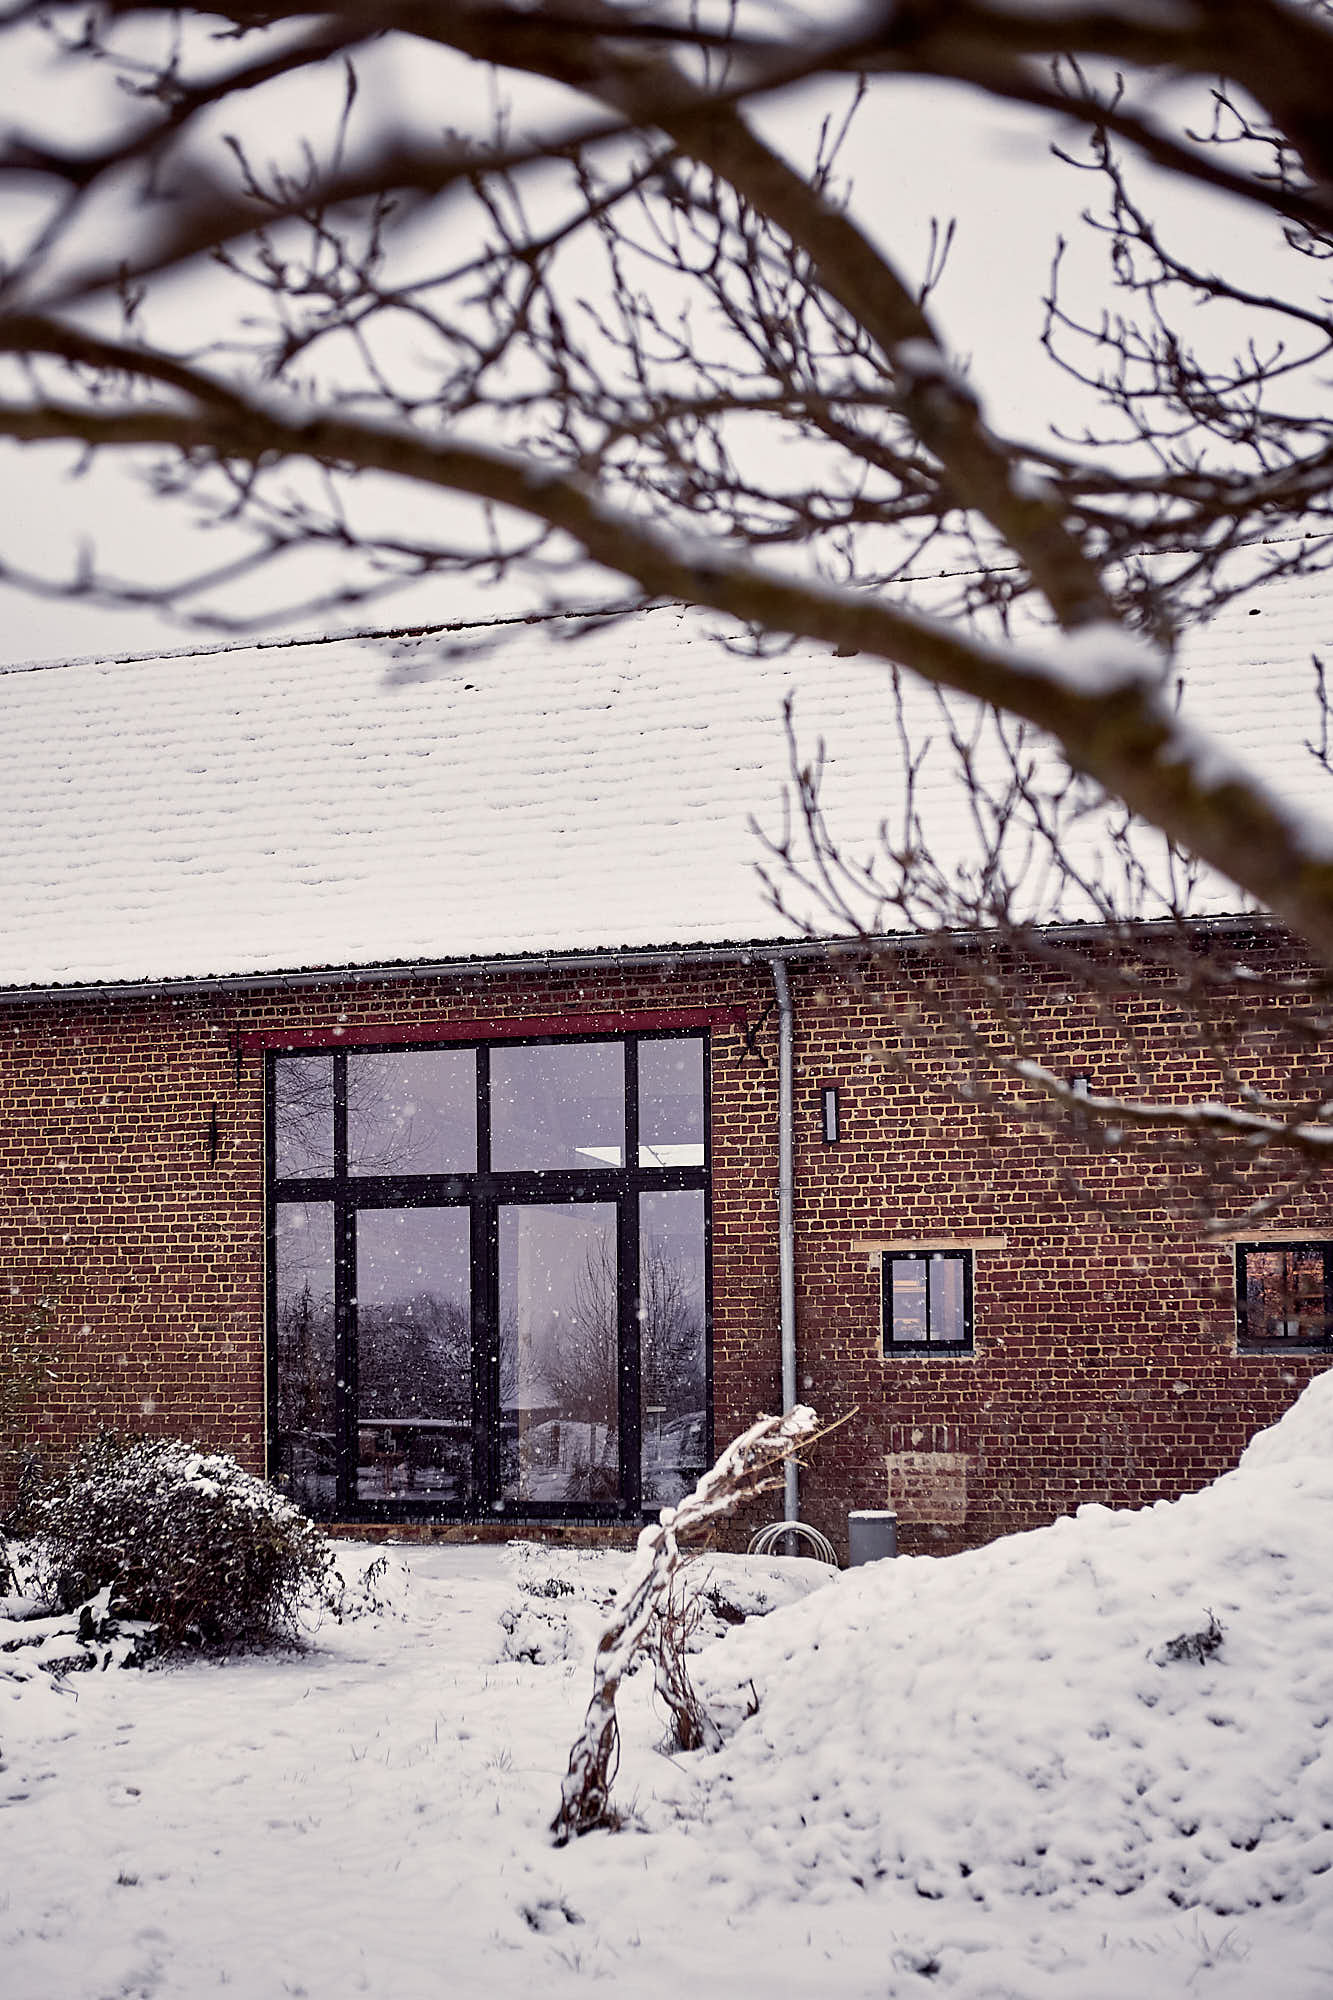 rustic farm with large window in a snowy landscape